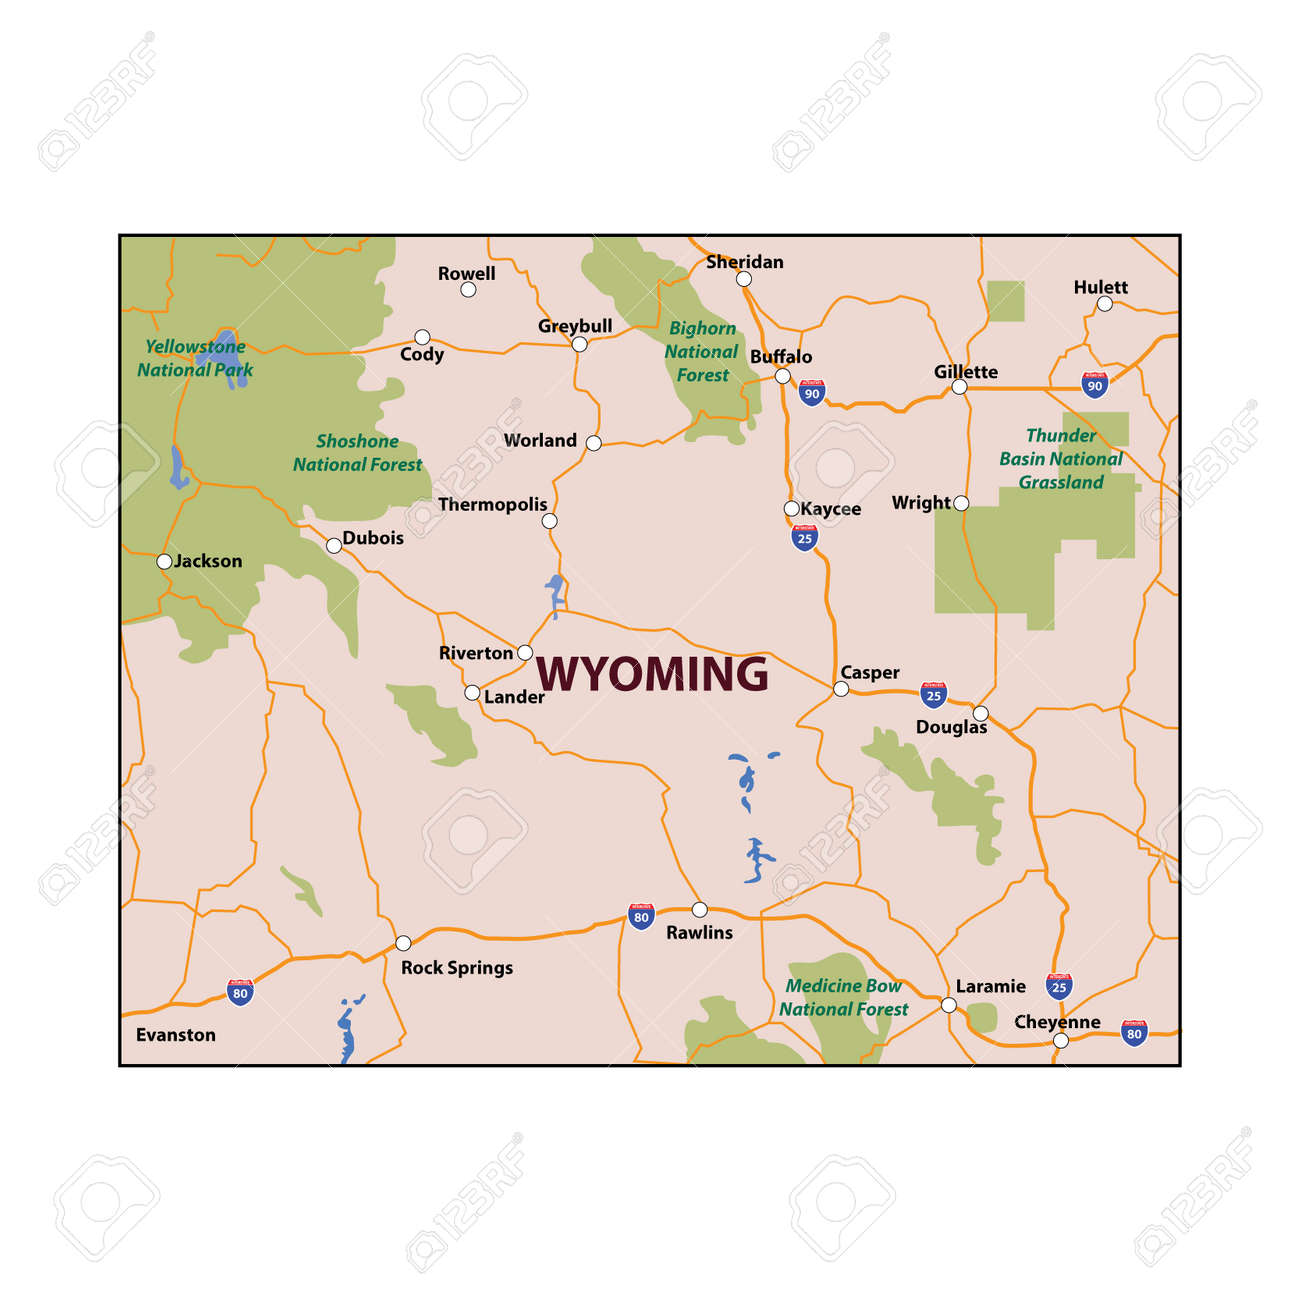 Wyoming State Colour Map Royalty Free Cliparts, Vectors, And Stock ...